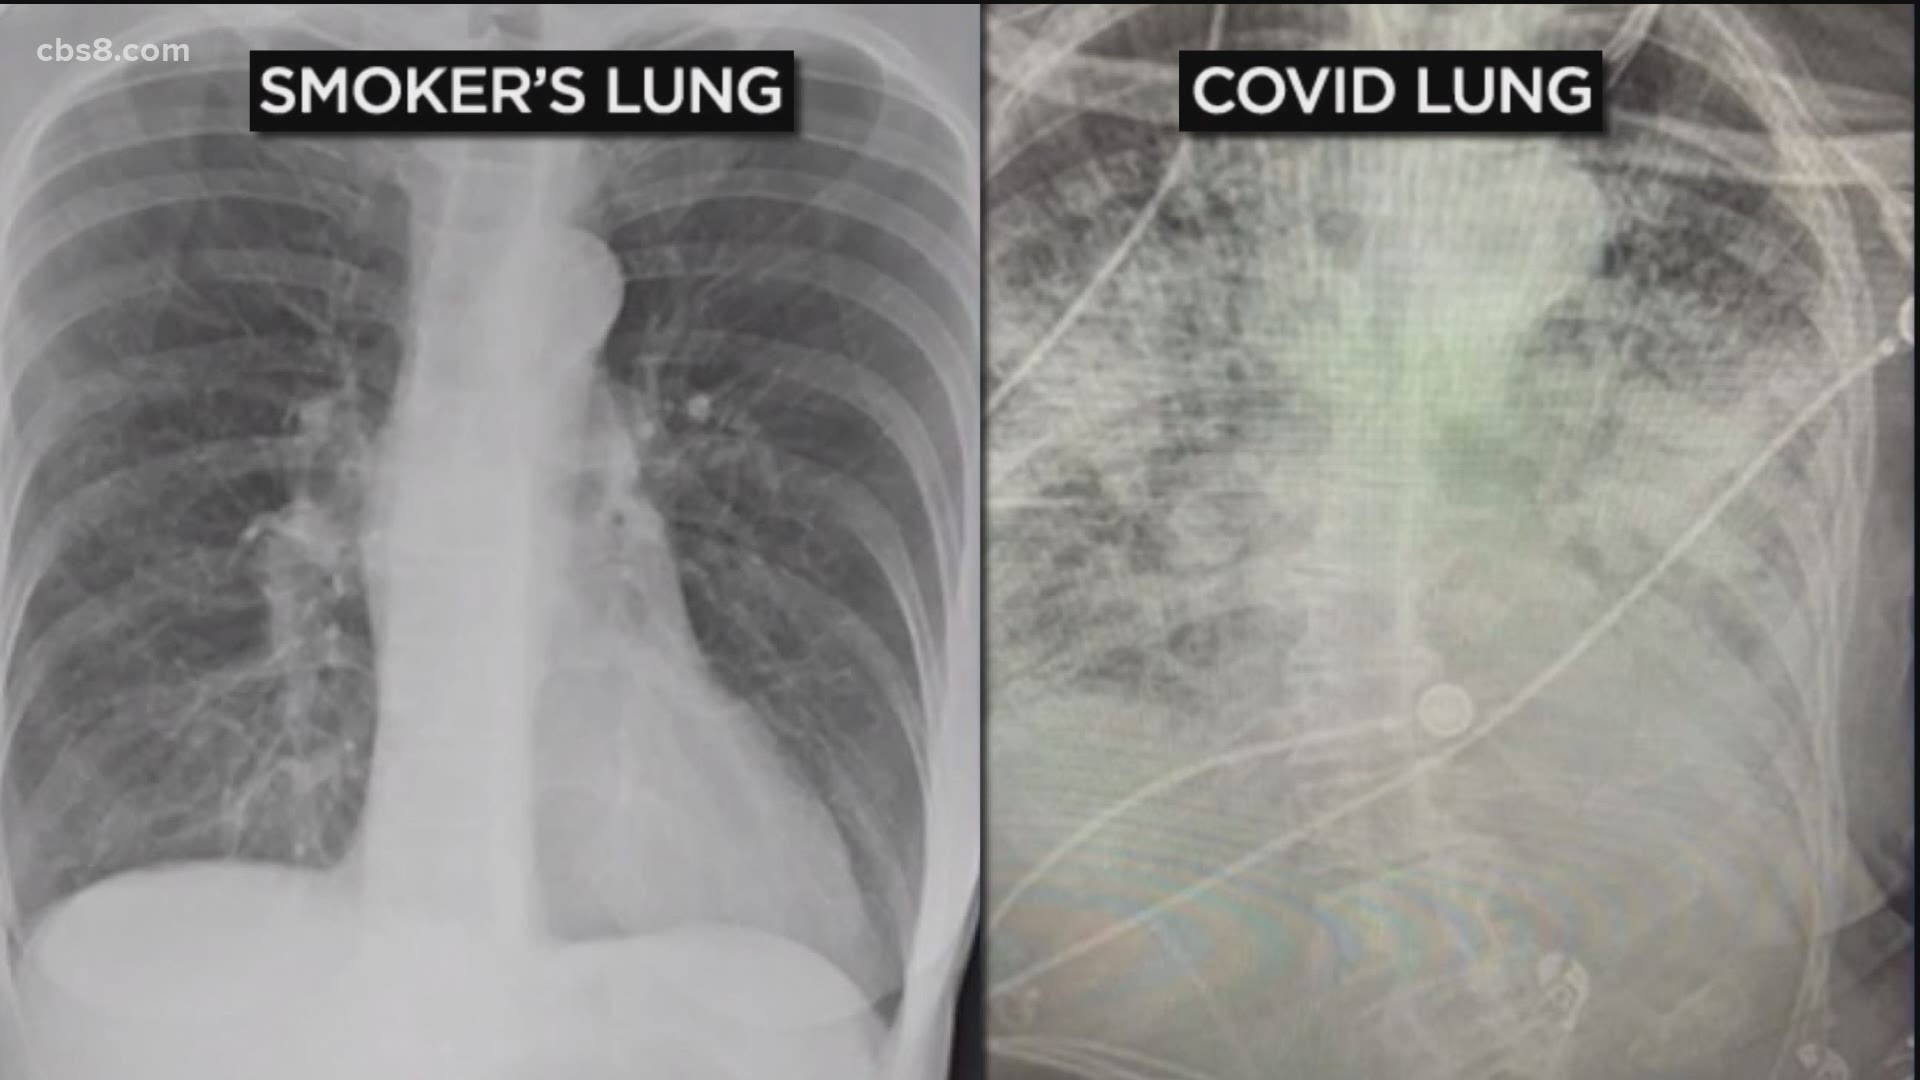 Are COVID-19 patient's lungs worse than smokers? | cbs8.com